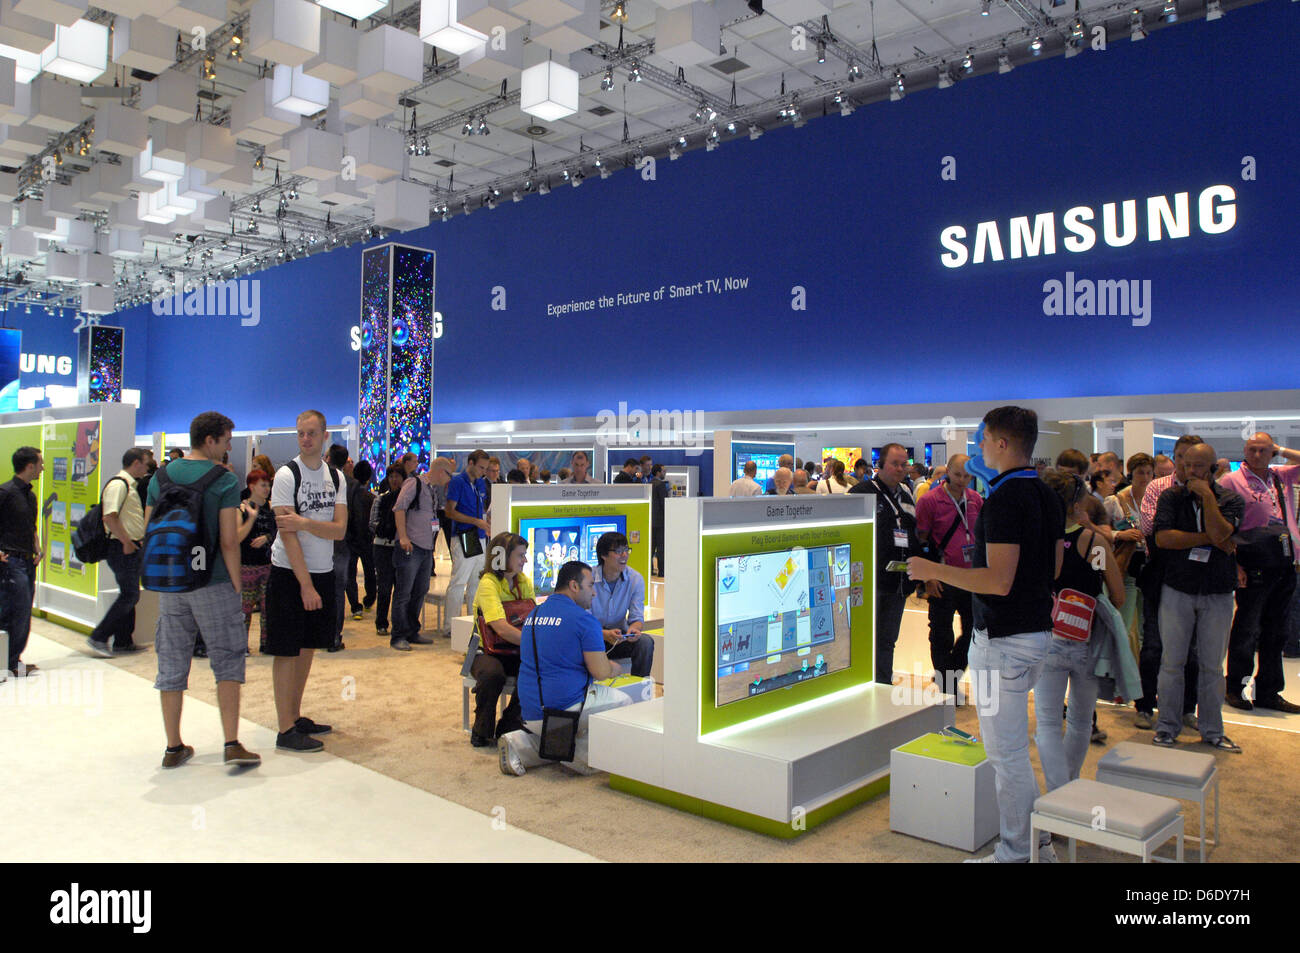 the samsung booth at the berlin radio show ifa 2012 in berlin stock photo 55625797 alamy. Black Bedroom Furniture Sets. Home Design Ideas